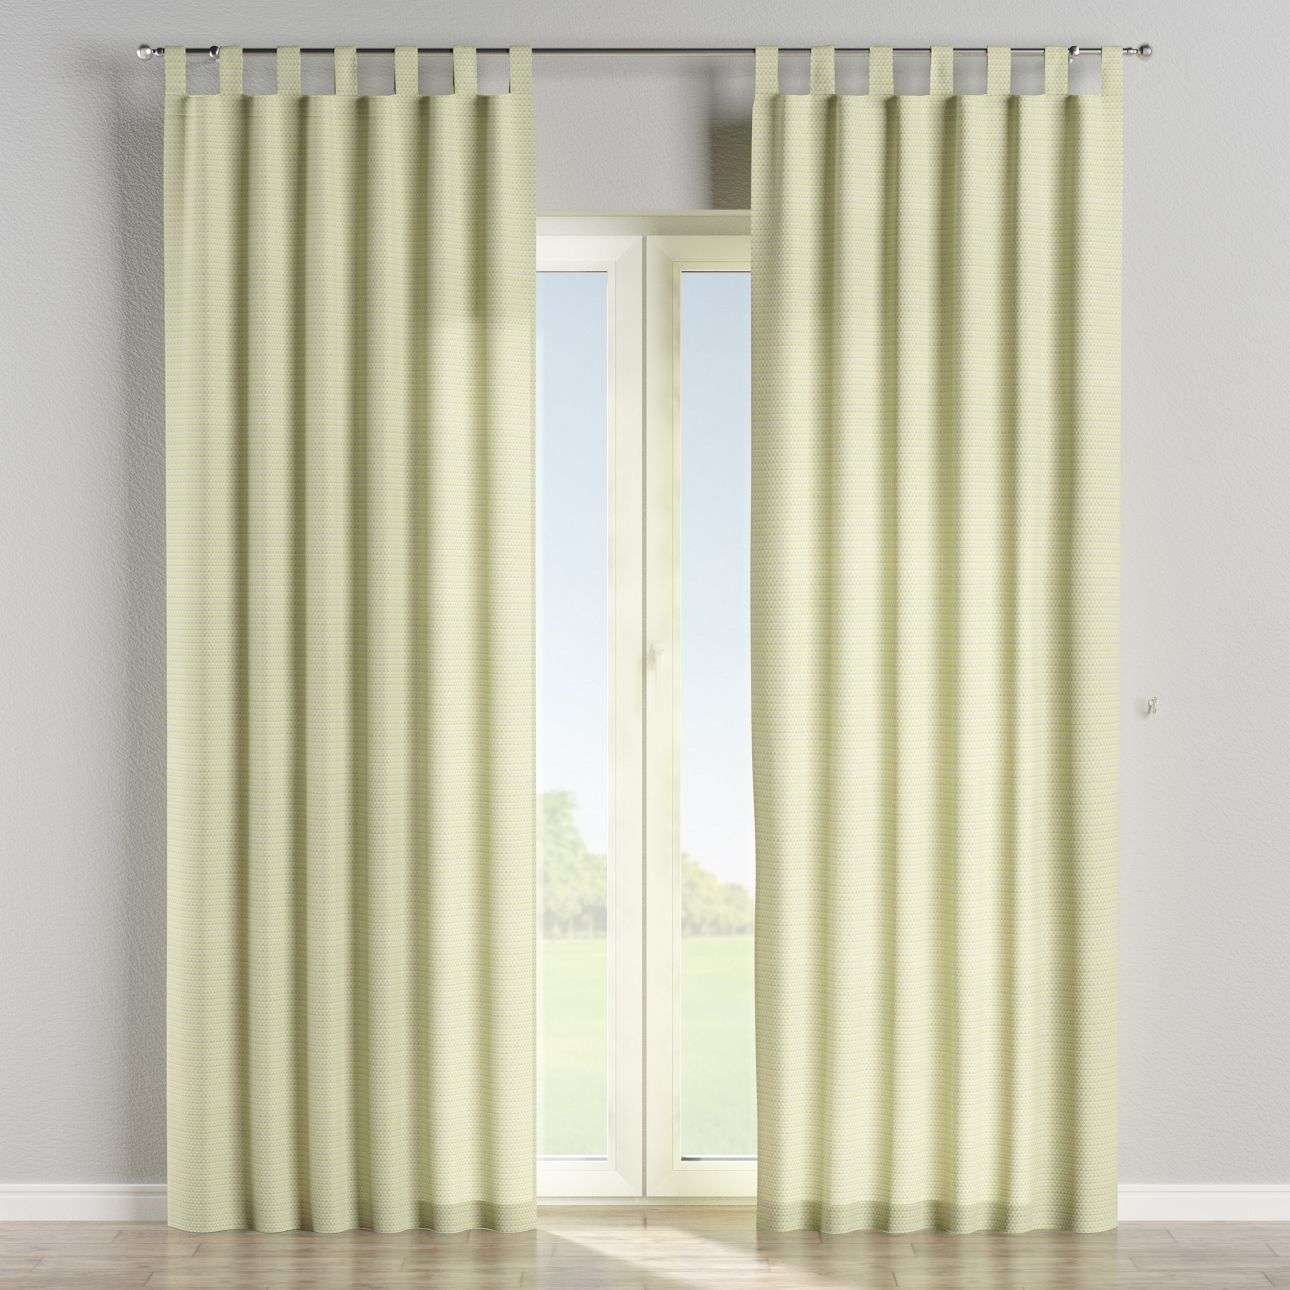 Tab top curtains in collection Rustica, fabric: 140-34